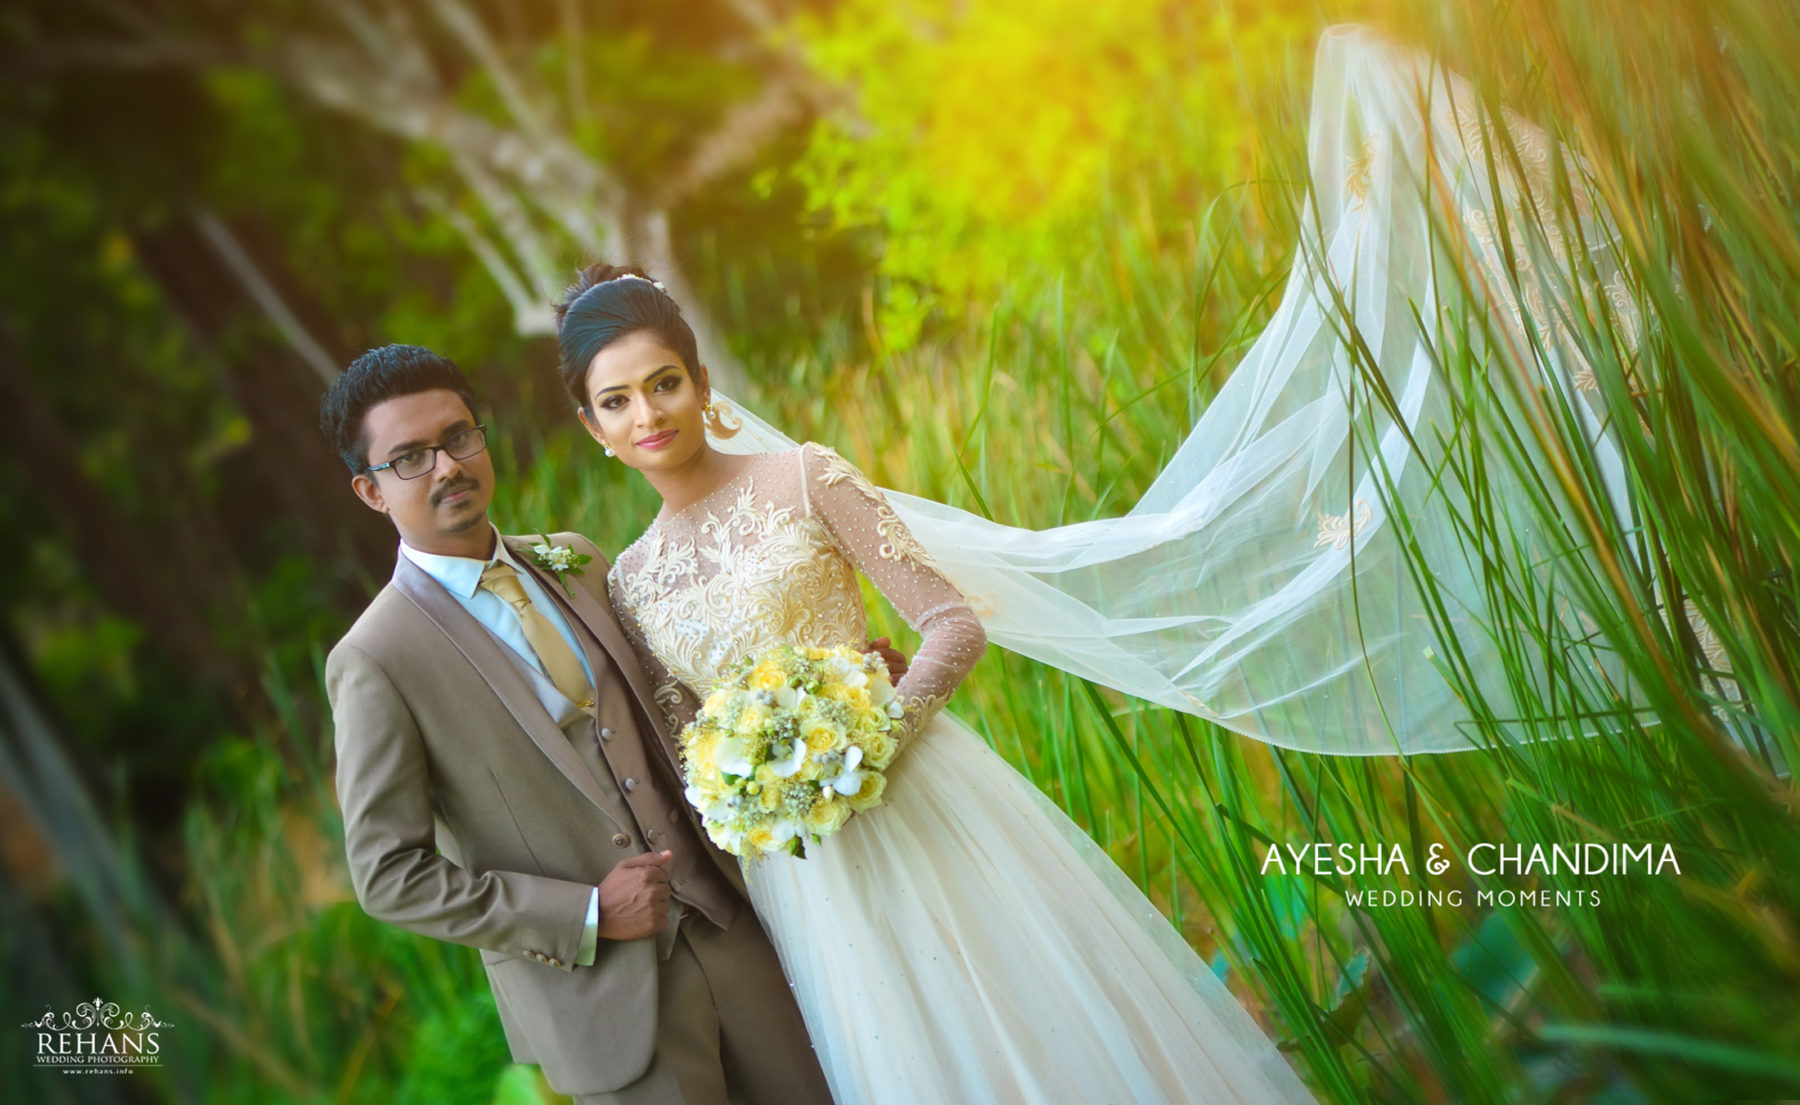 Rehans photography wedding photography in sri lanka our wedding albums blognews contact junglespirit